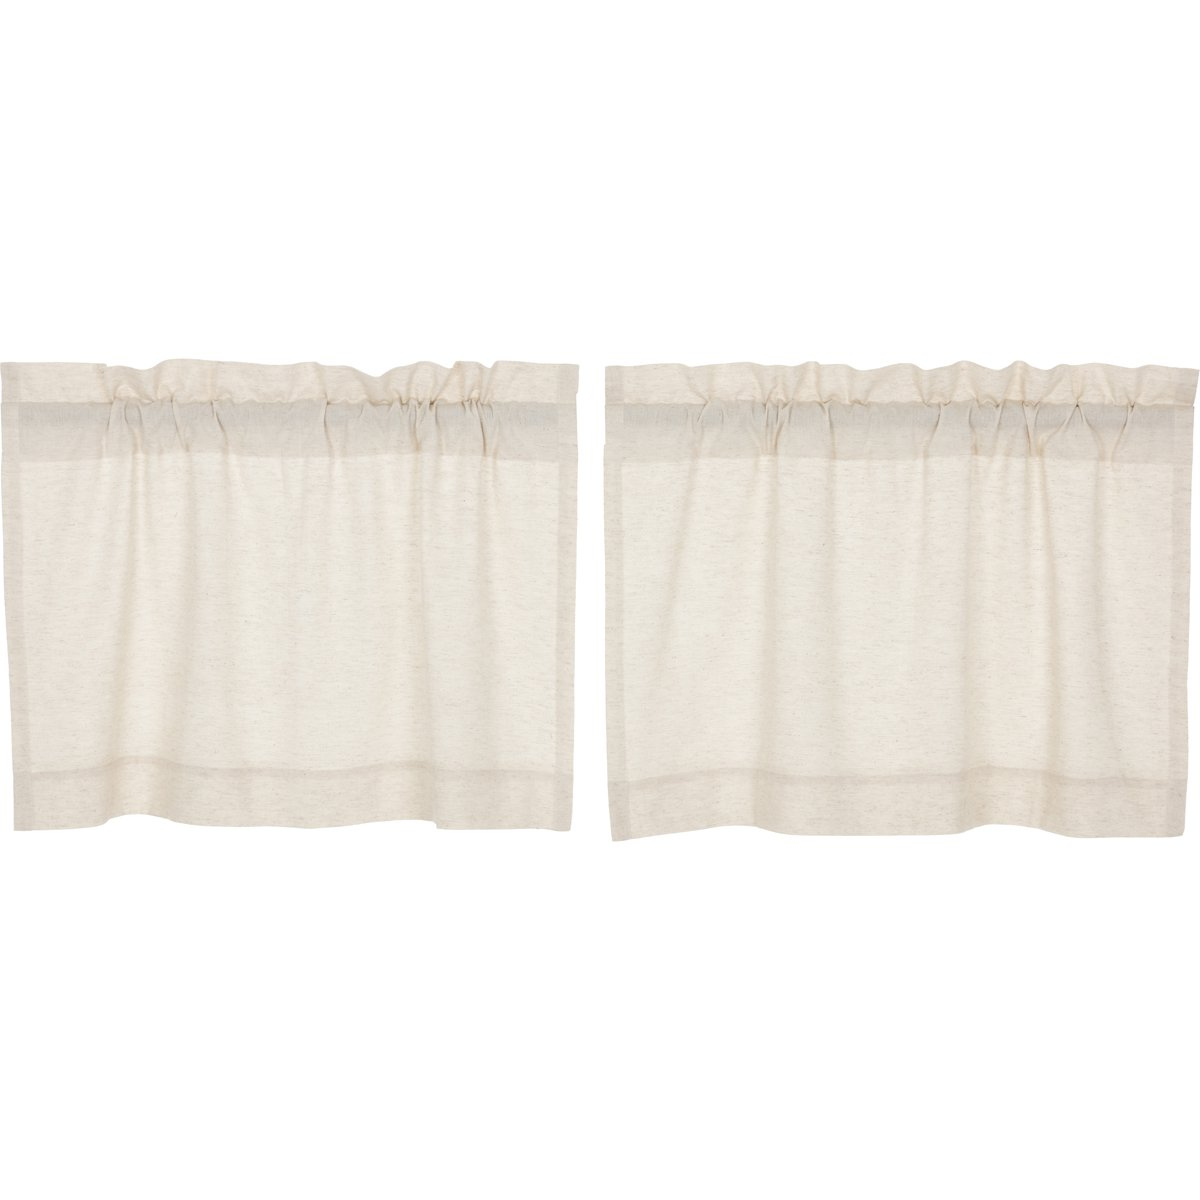 Best And Newest Amazon: Vhc Brands Farmhouse Window Simple Life Flax Regarding Simple Life Flax Tier Pairs (View 2 of 20)